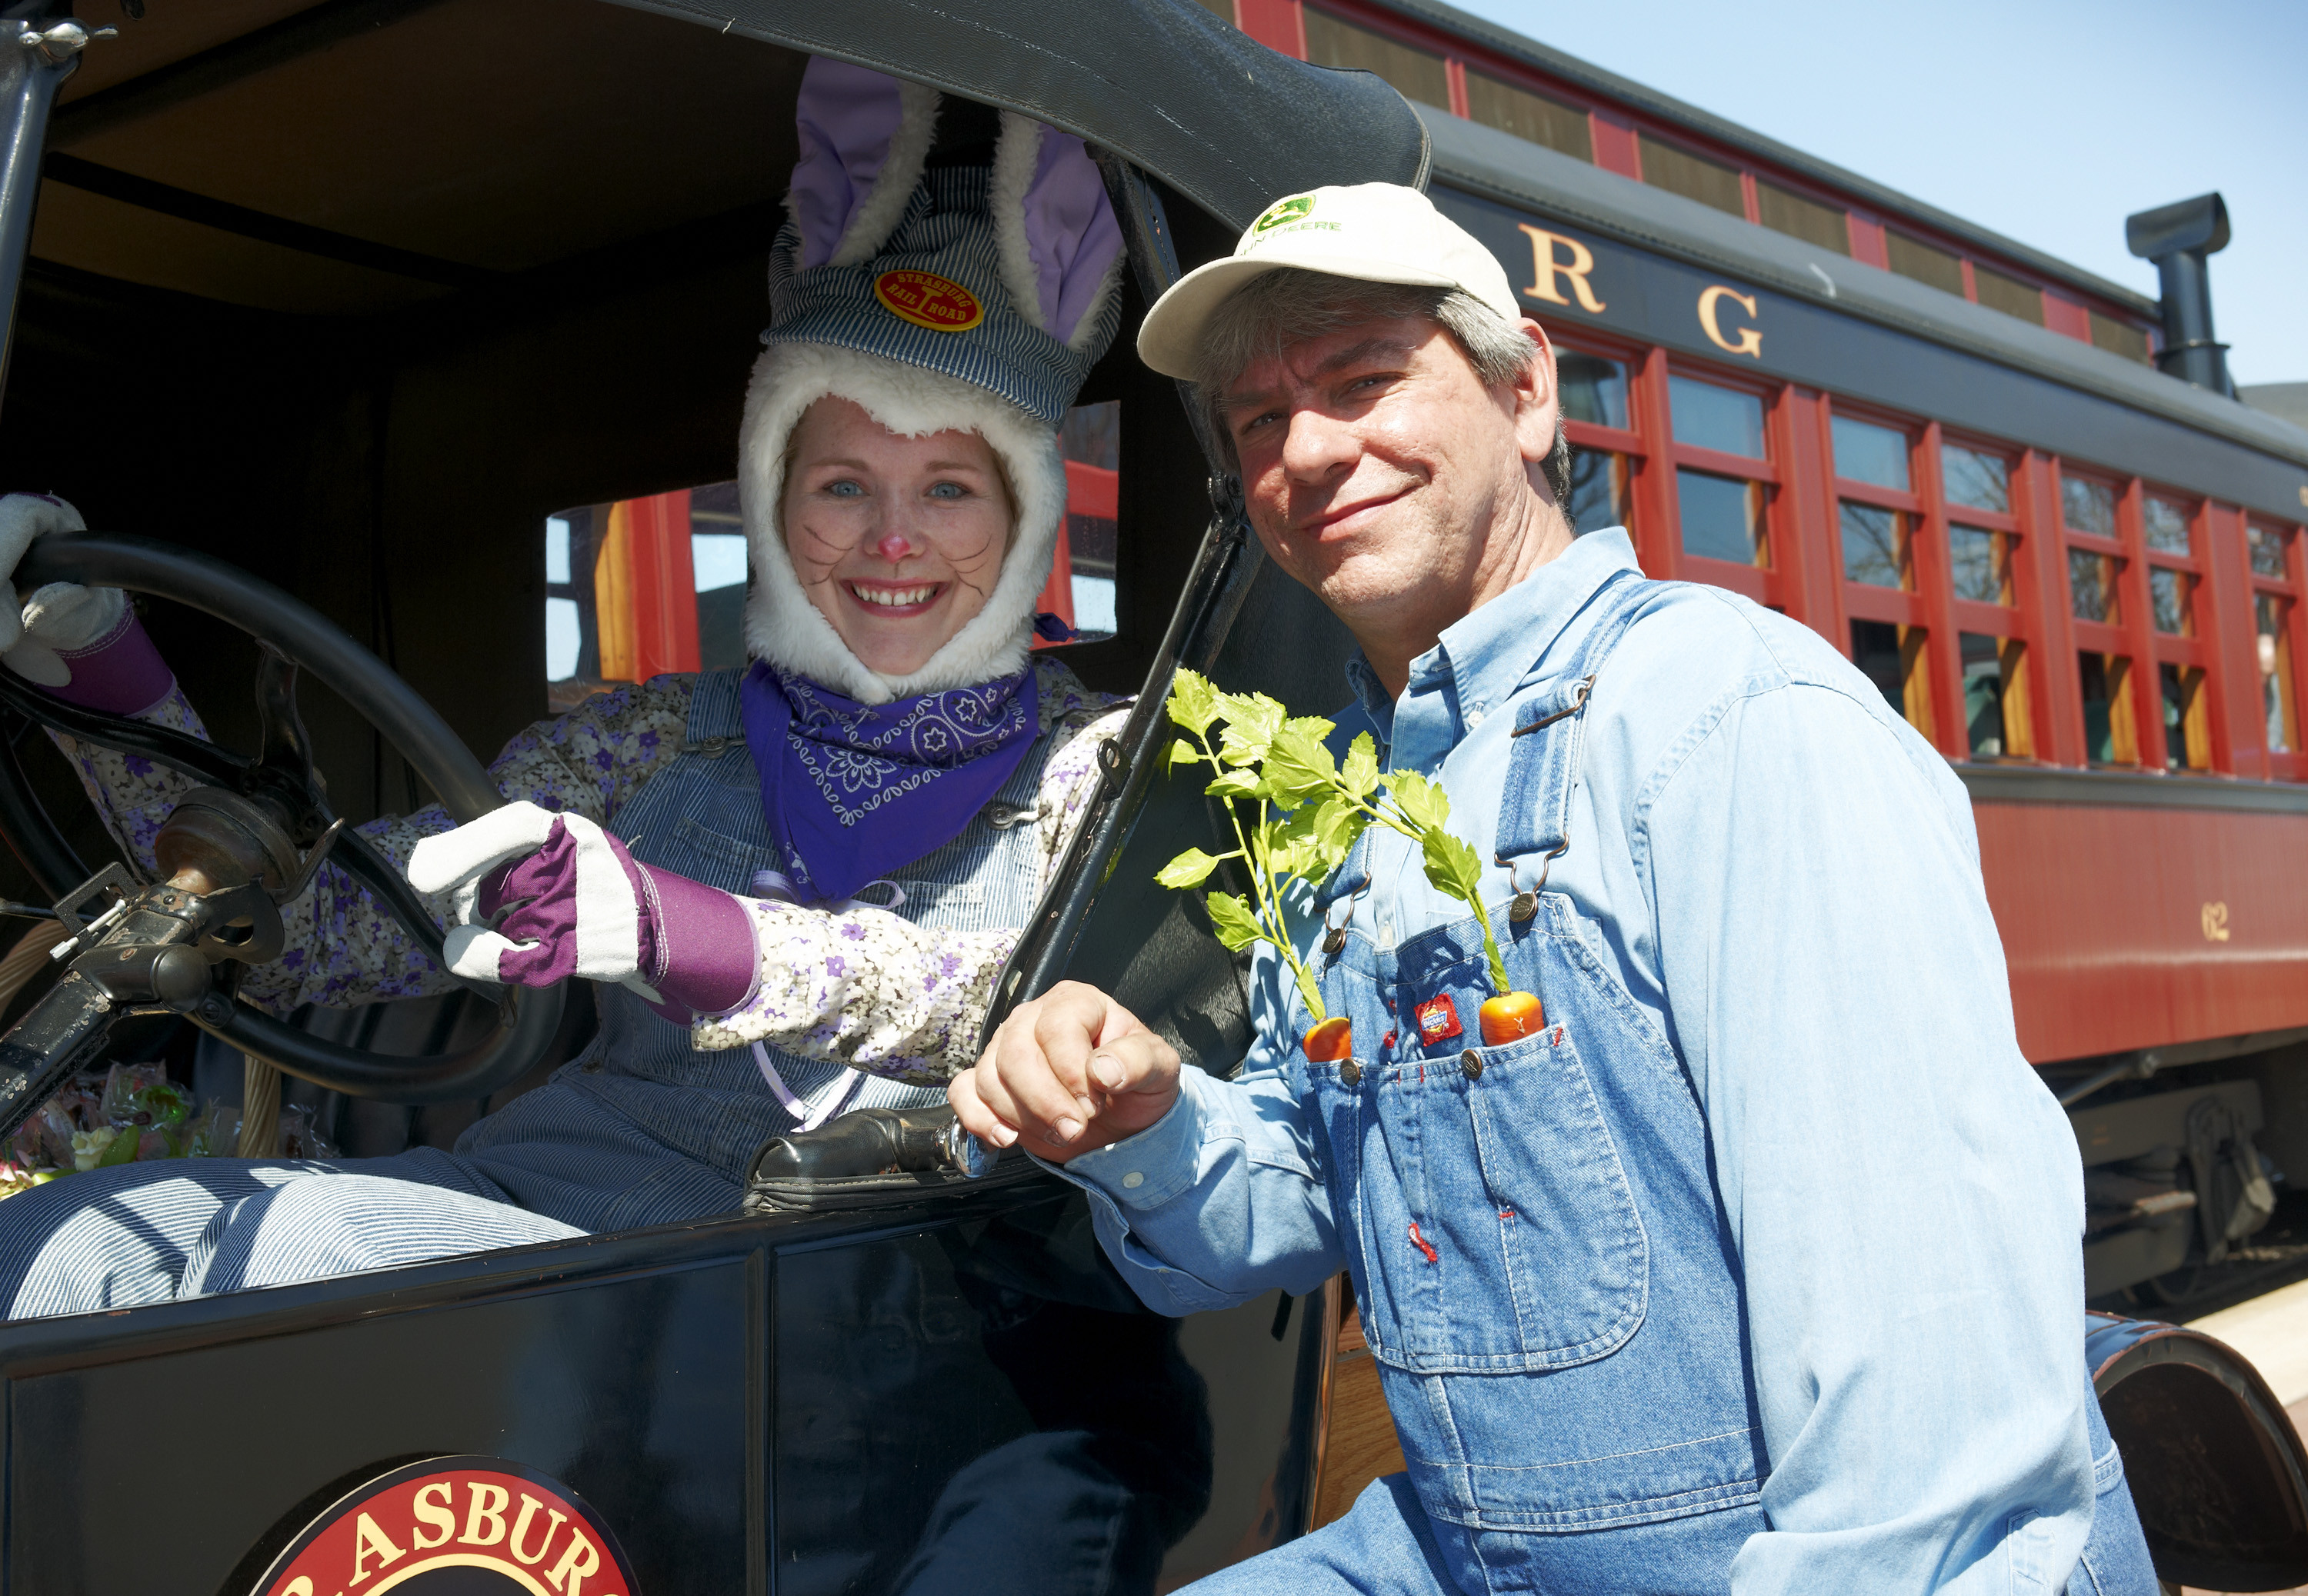 Easter Dinner Lancaster Pa  Easter Bunny Heads to Strasburg March 25 27 for a Ride